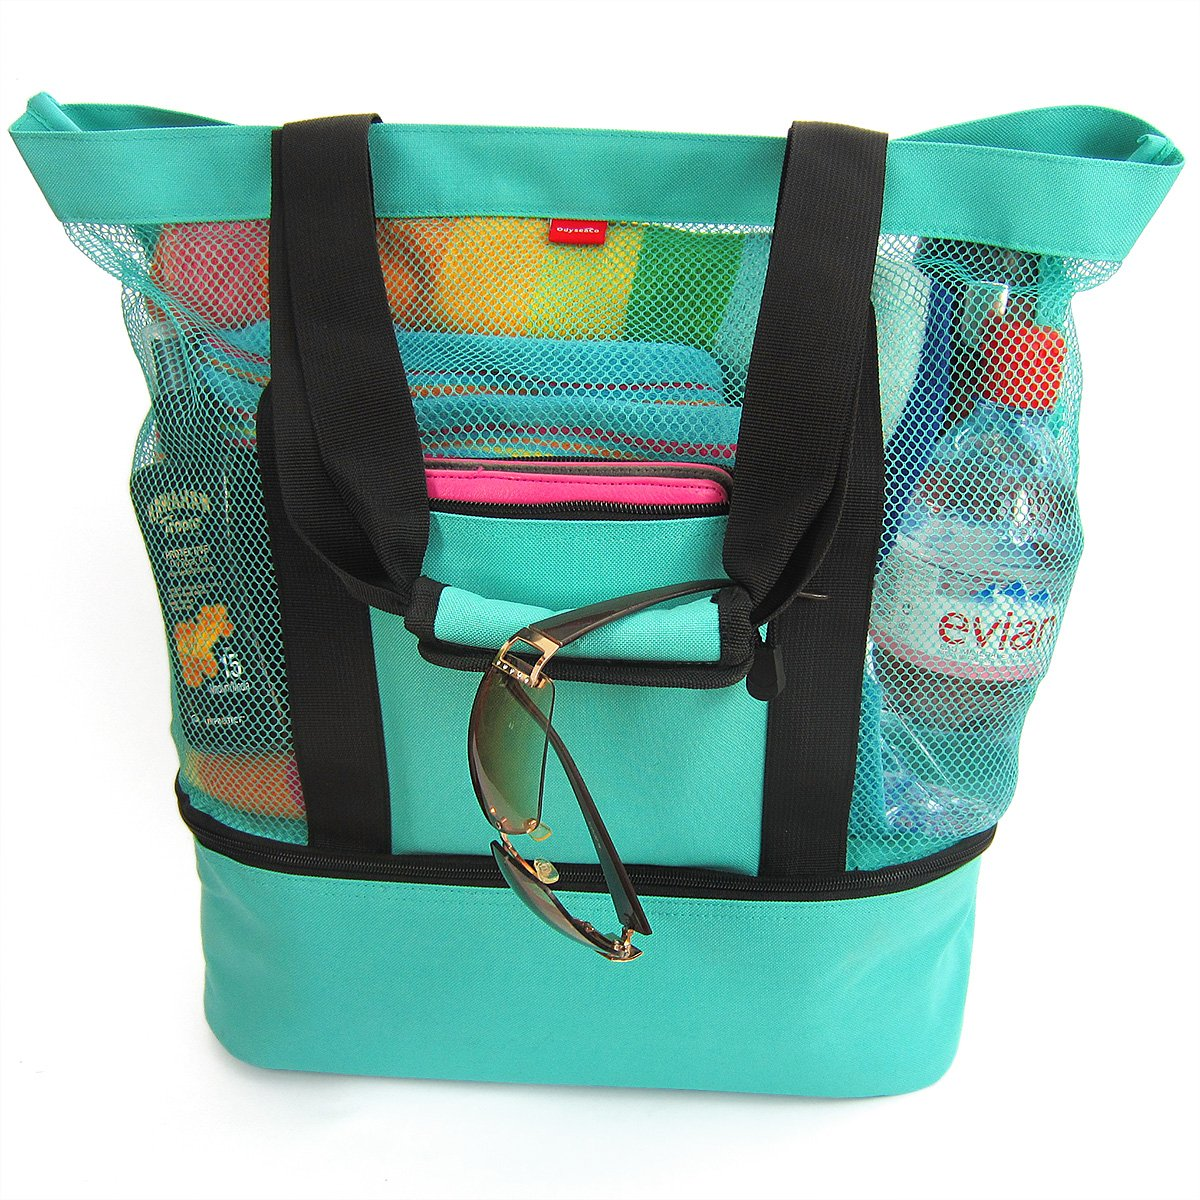 Beach Tote Bag with Zipper Top and Insulated Picnic Cooler